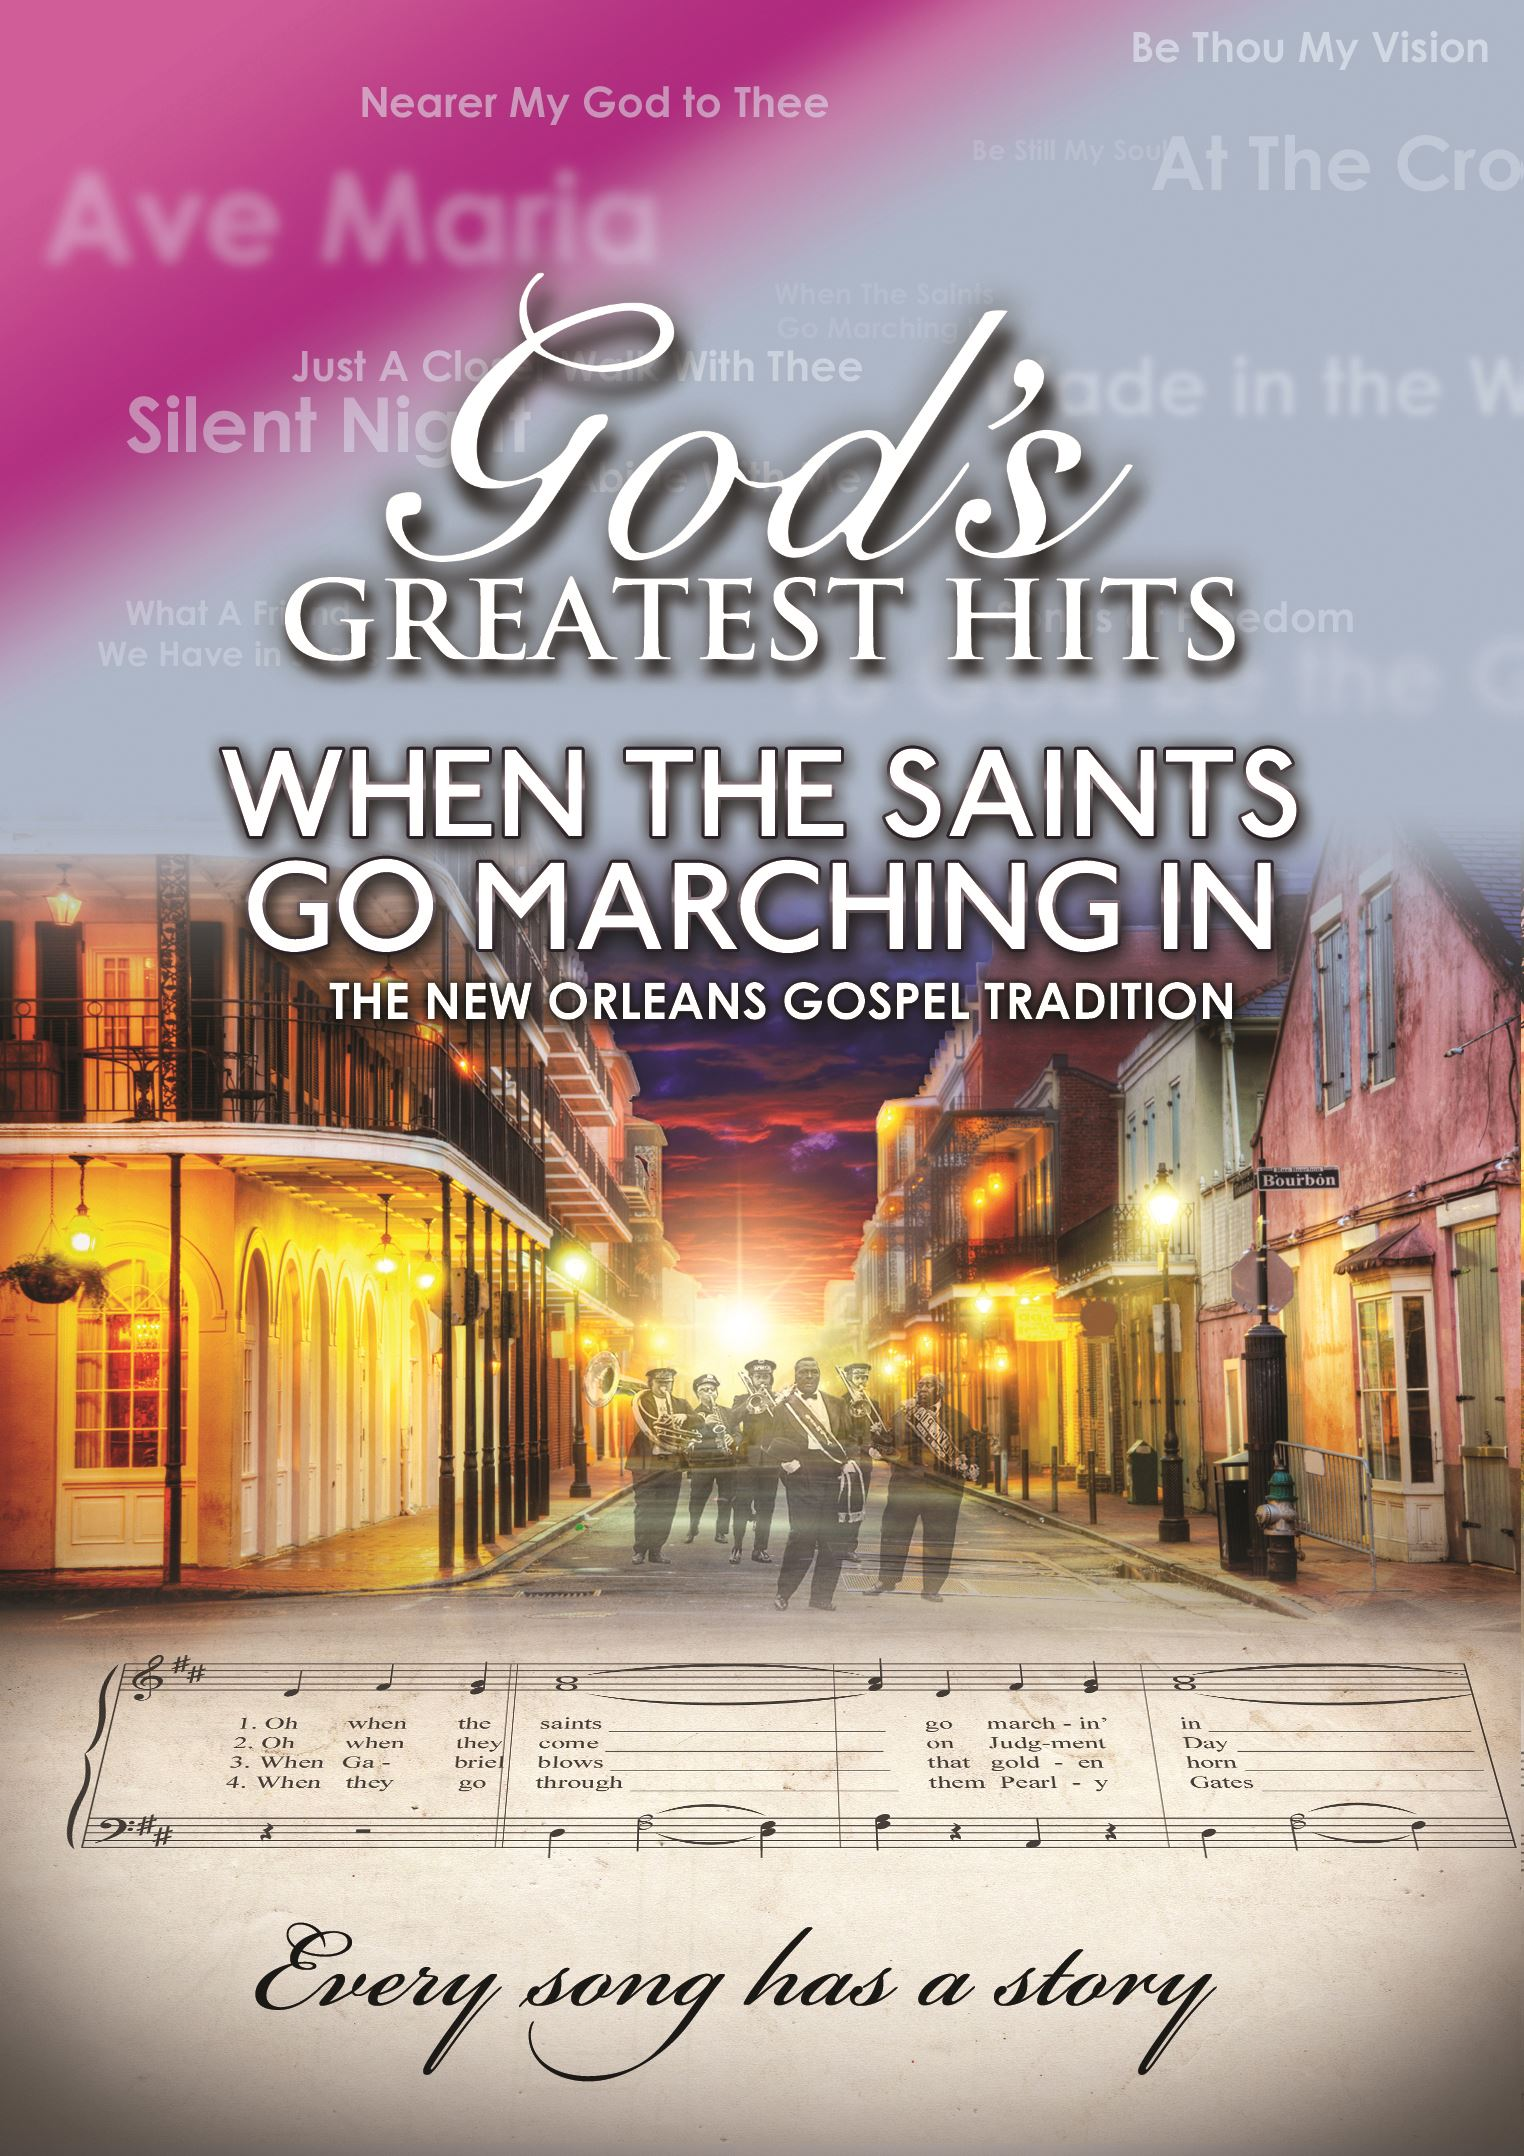 God's Greatest Hits: When the Saints Go Marching In